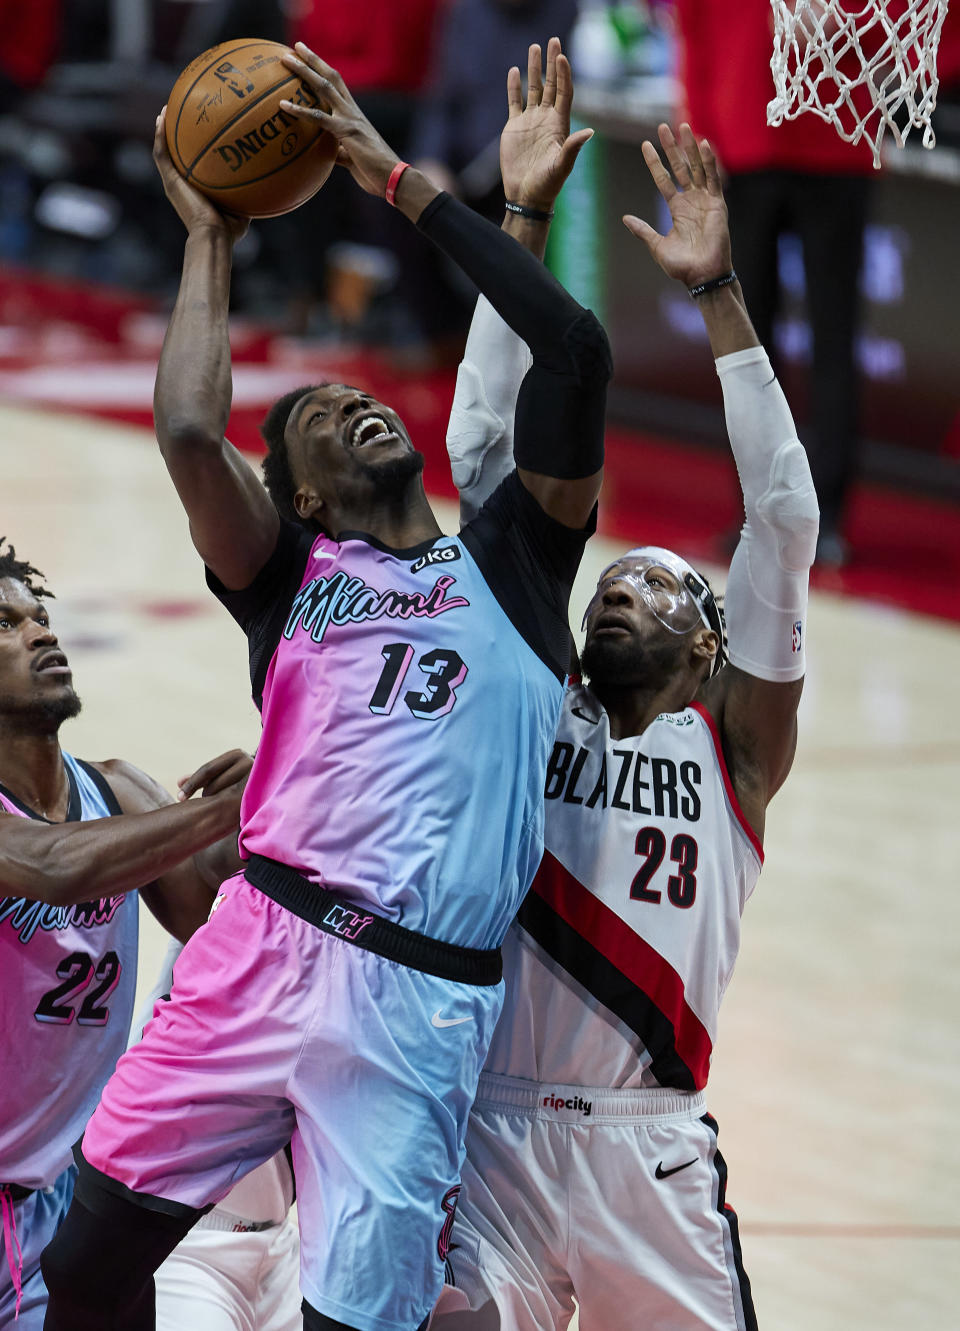 Miami Heat center Bam Adebayo, left, shoots over Portland Trail Blazers forward Robert Covington during the first half of an NBA basketball game in Portland, Ore., Sunday, April 11, 2021. (AP Photo/Craig Mitchelldyer)